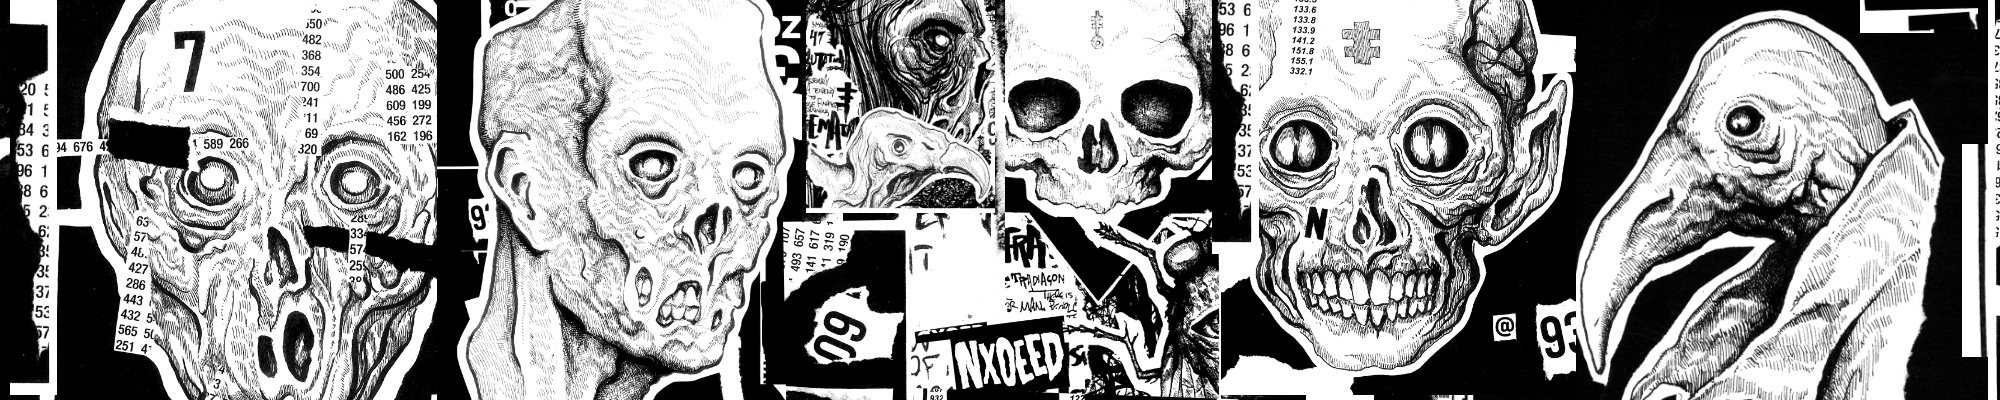 nxoeed Cover